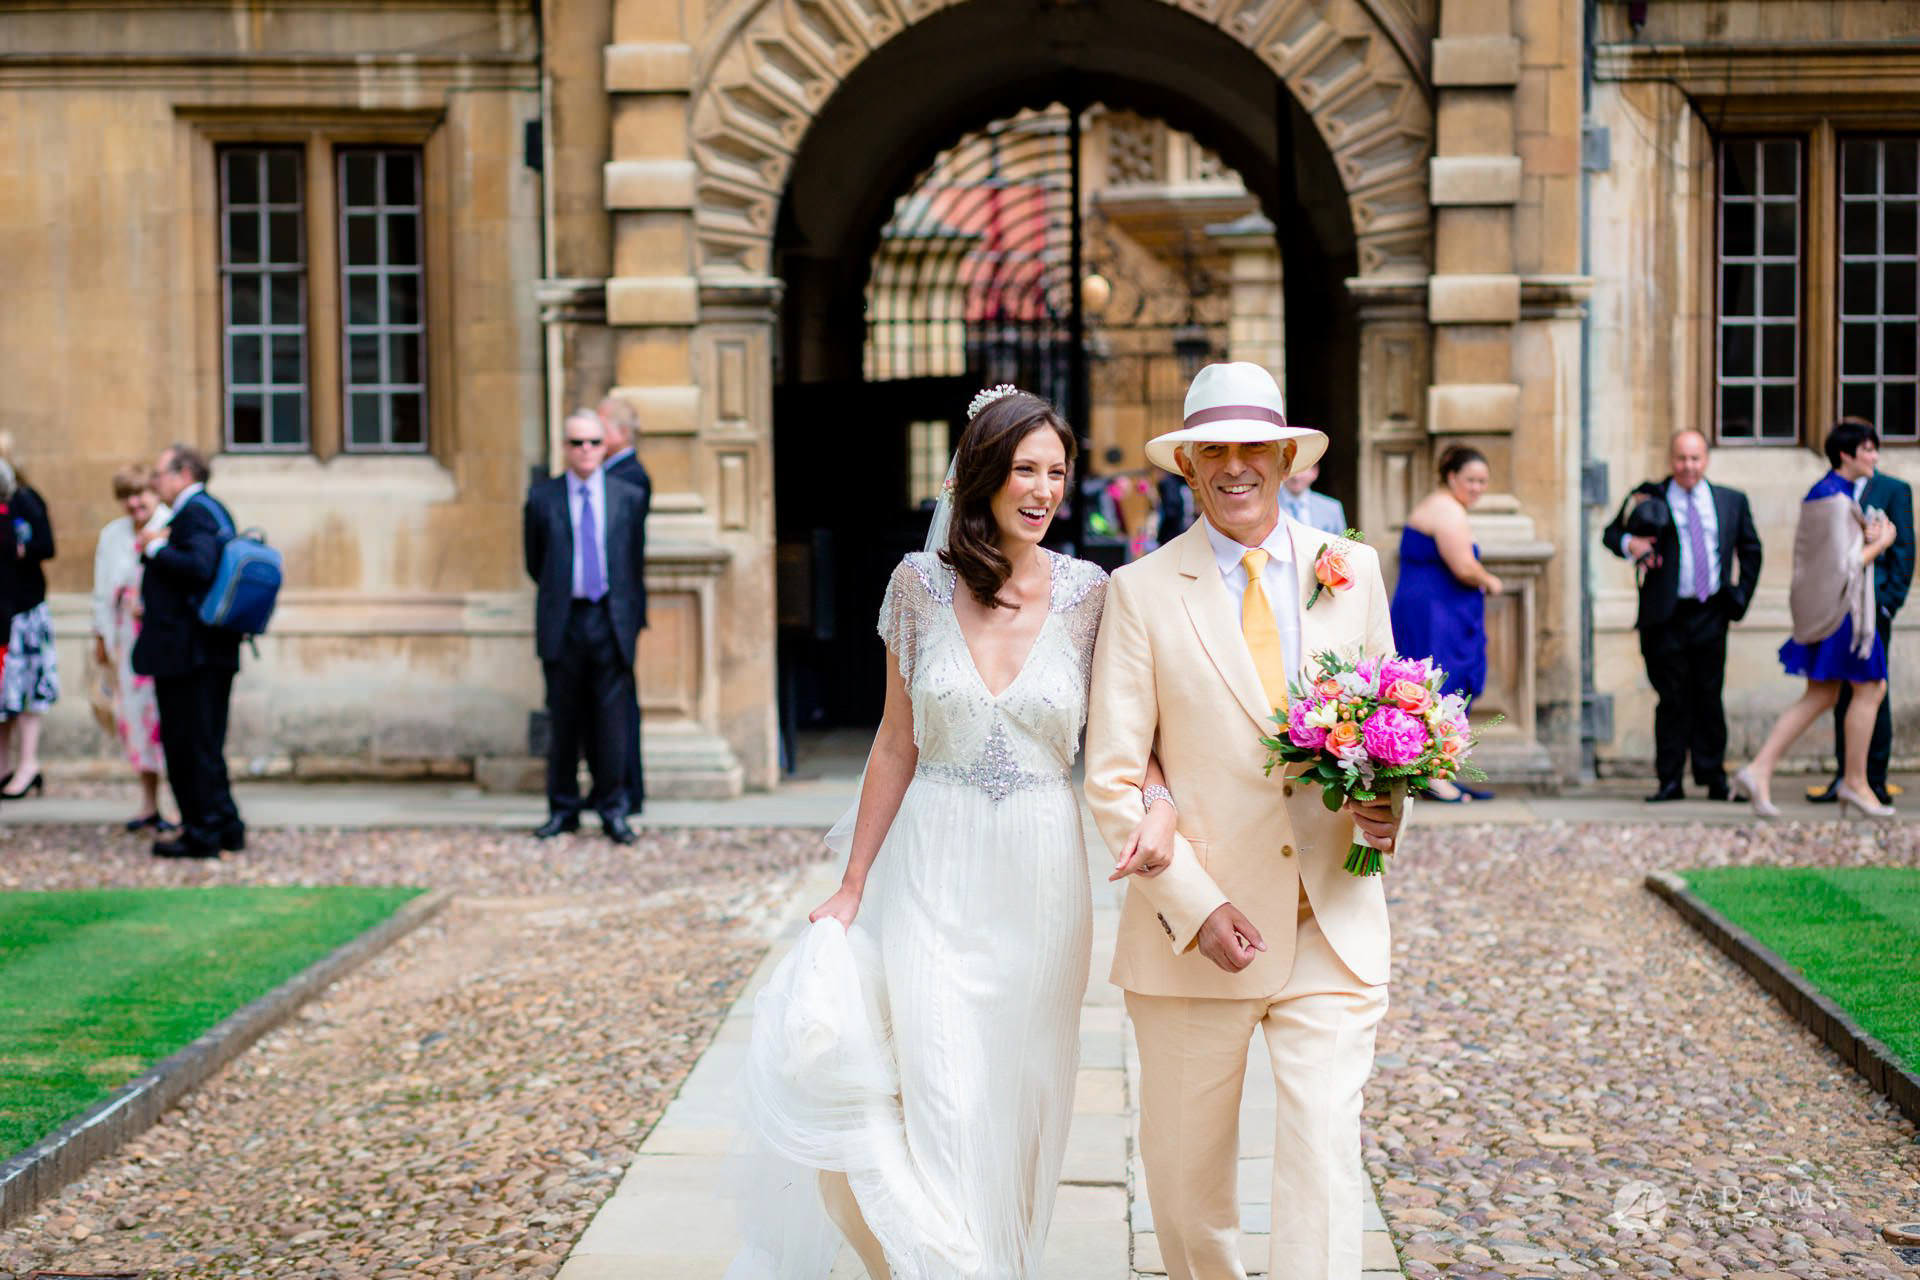 Clare College wedding bride and her father walking in the courtyard